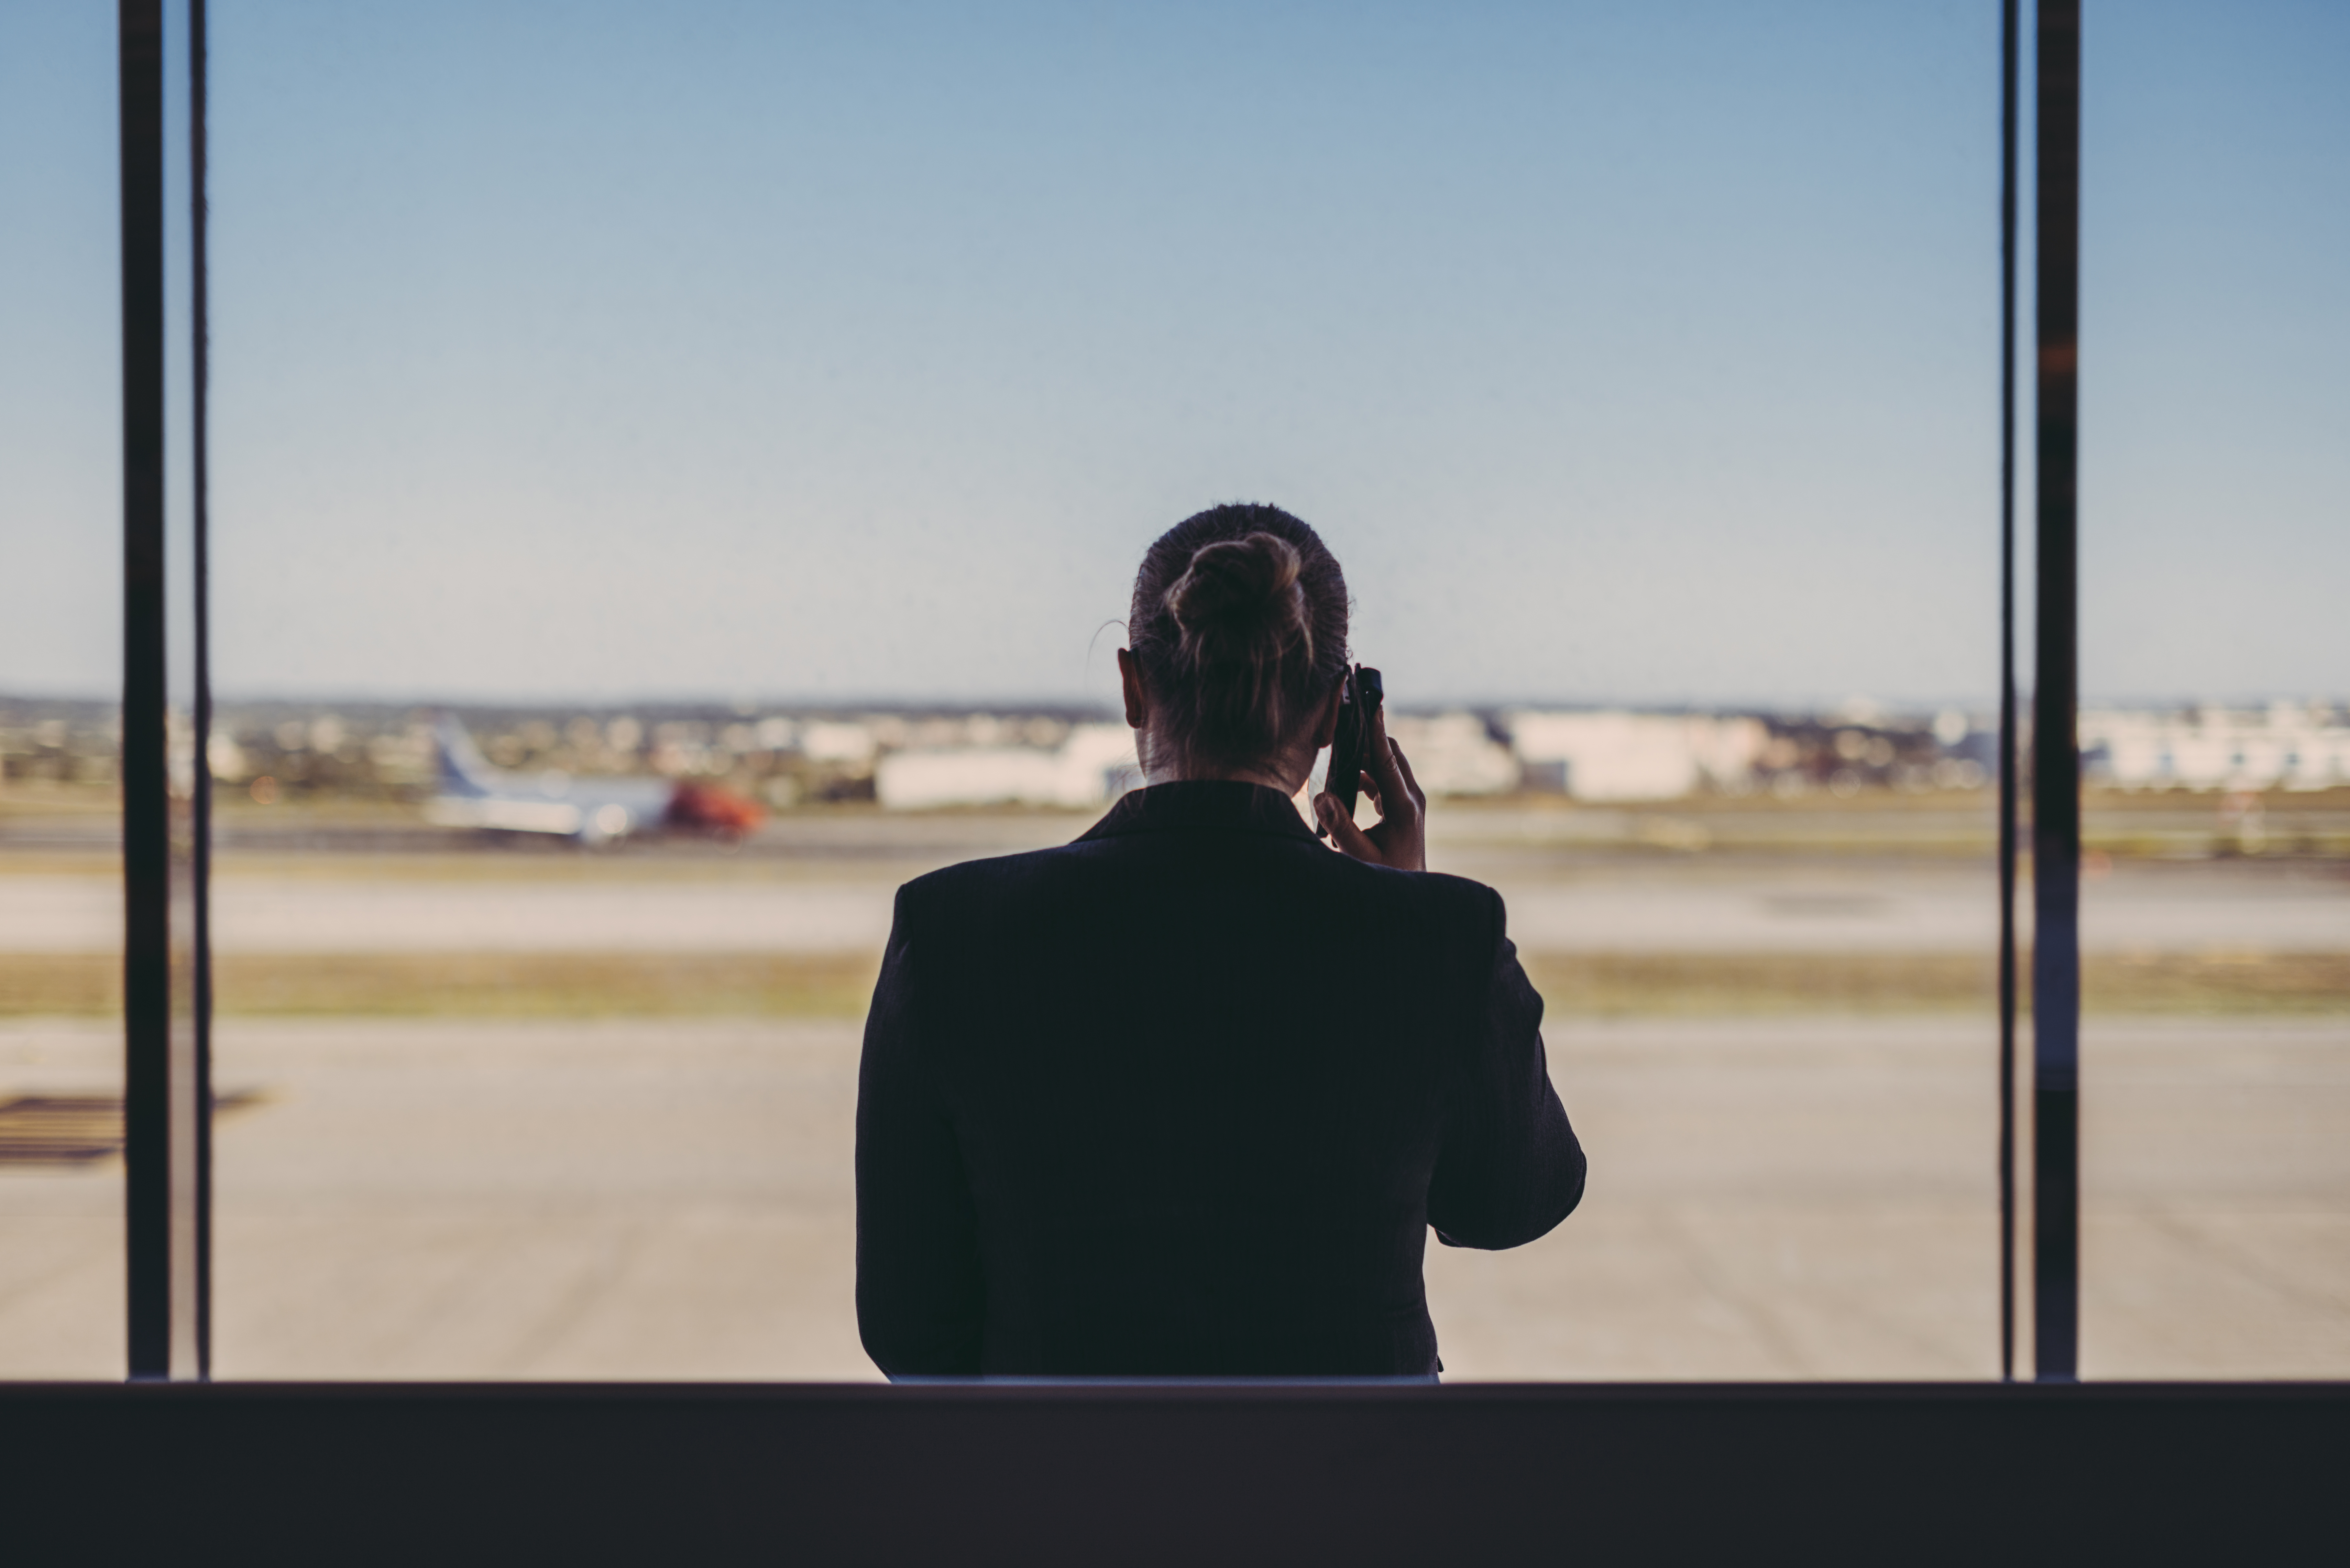 Business woman on phone at airport.